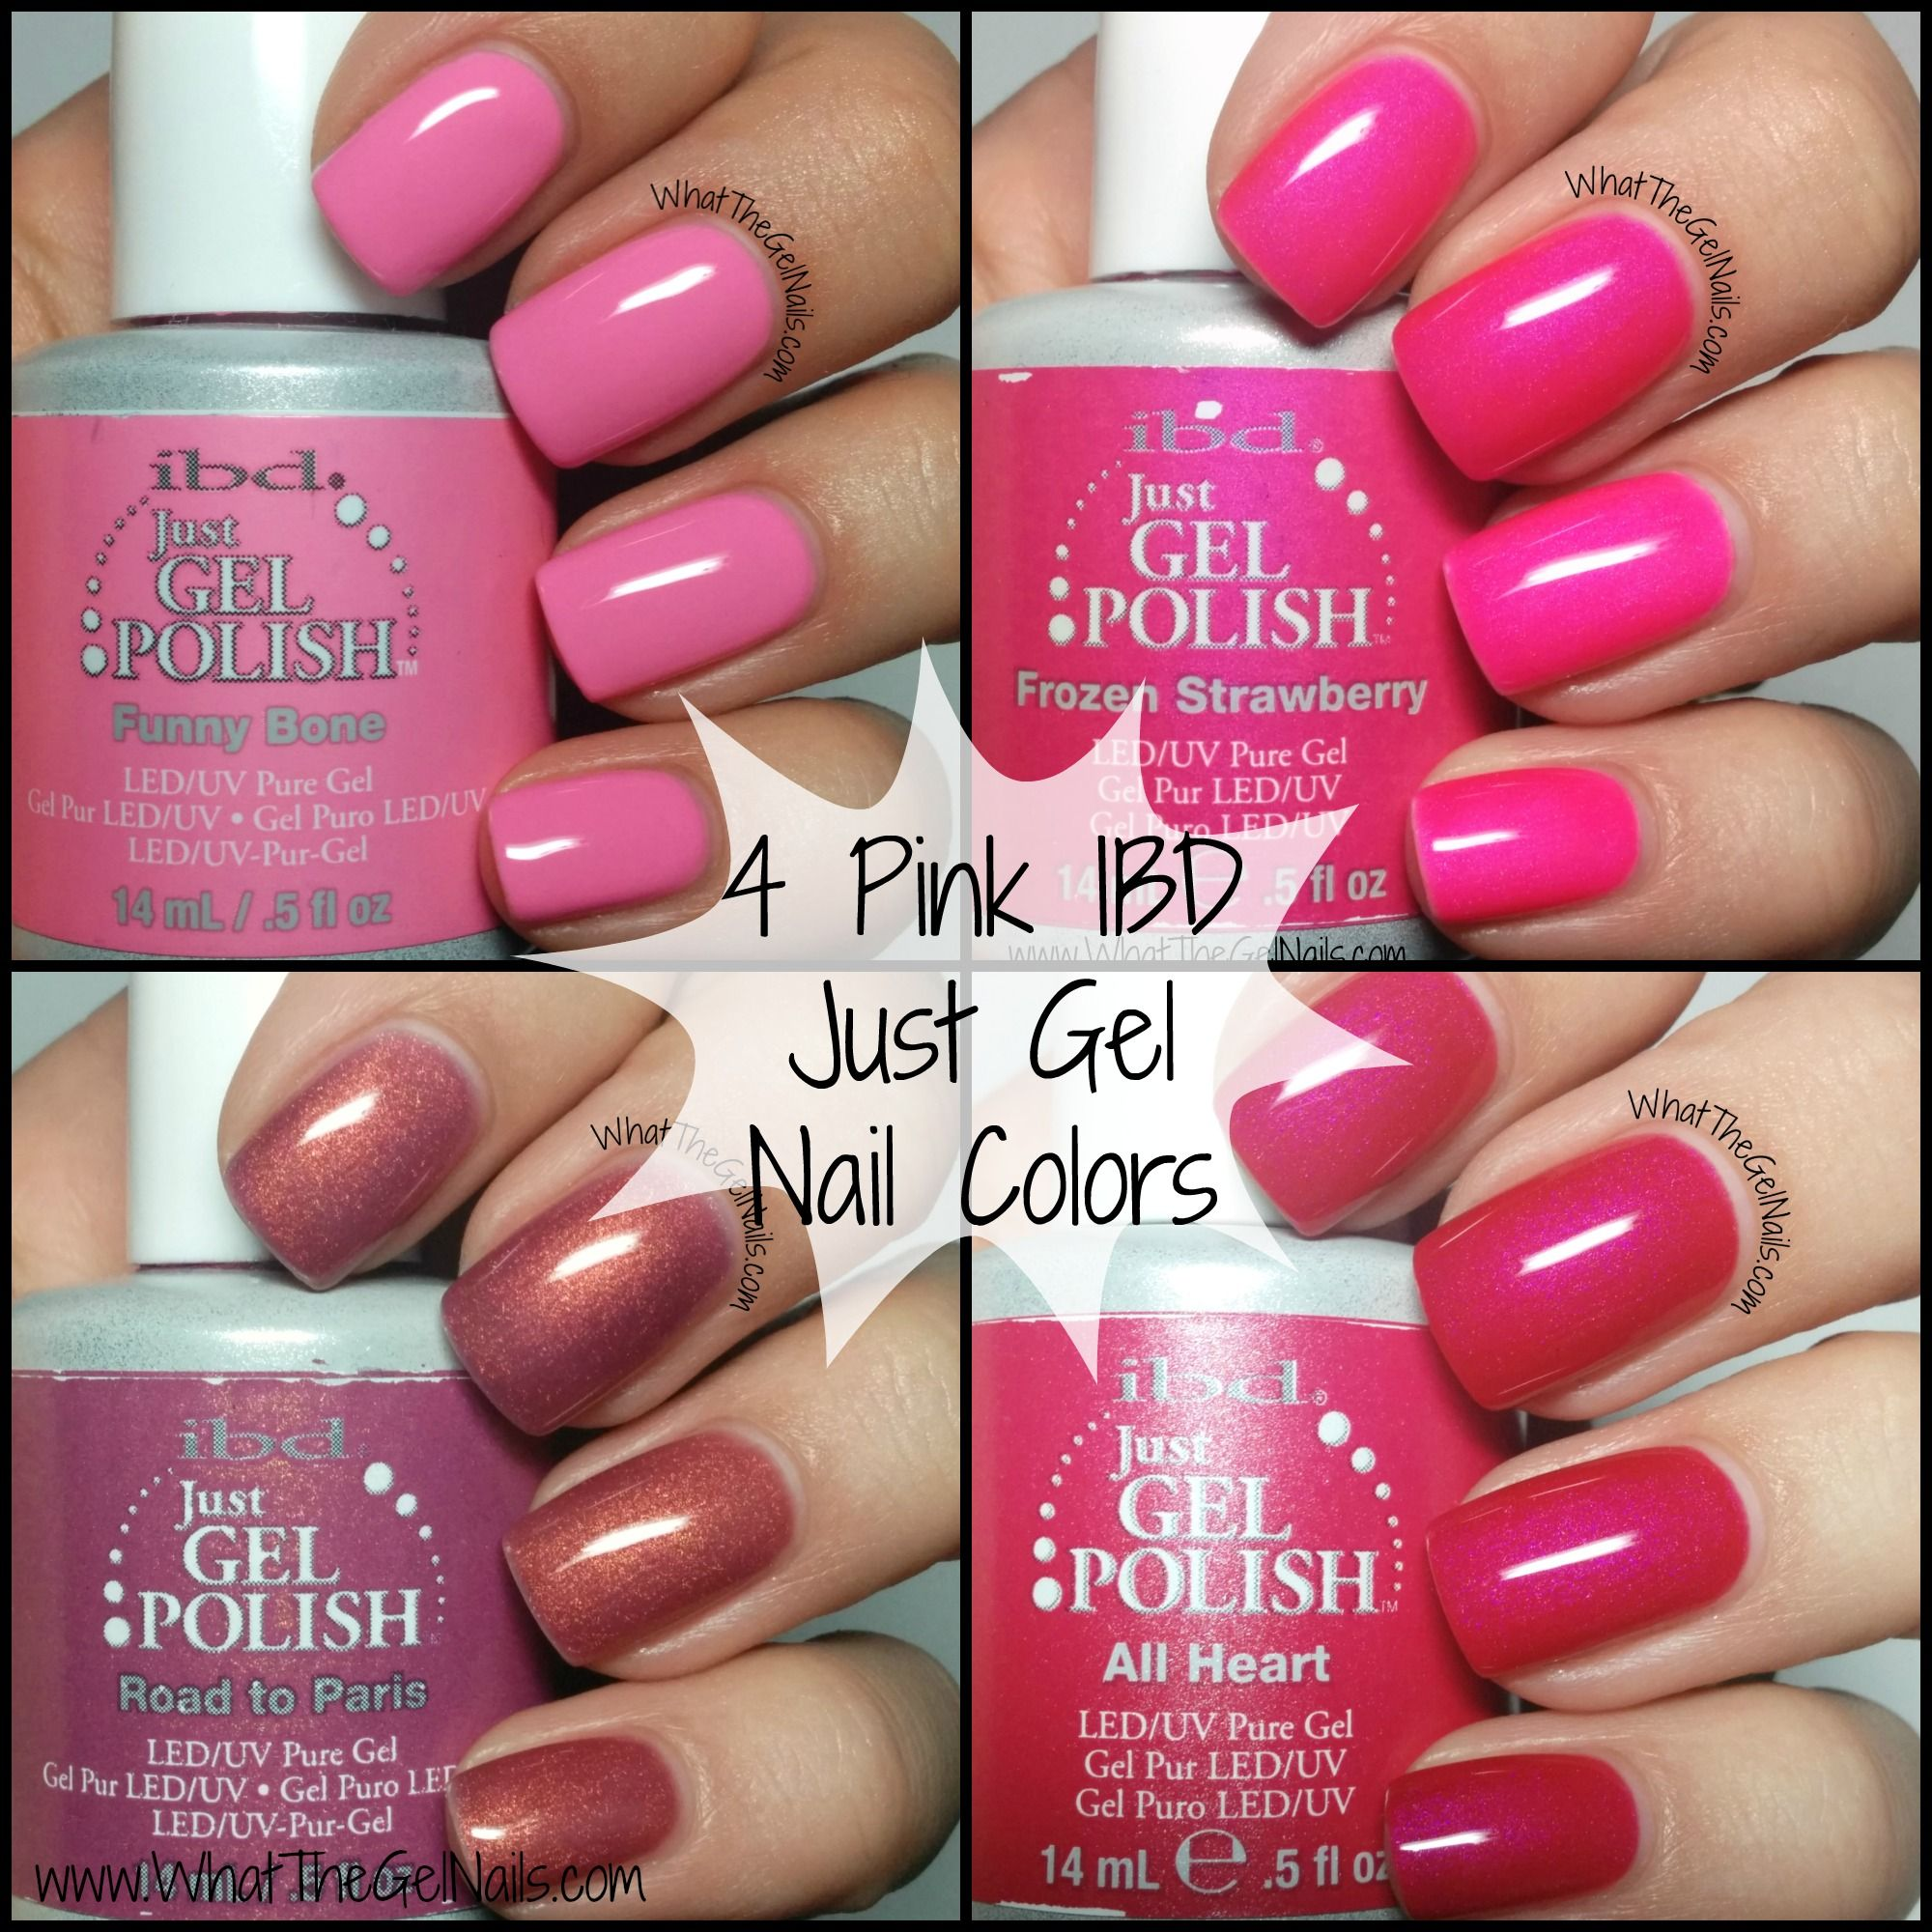 Gel Nail Polishes: Swatches Of Pink IBD Just Gel Nail Polish Colors. These